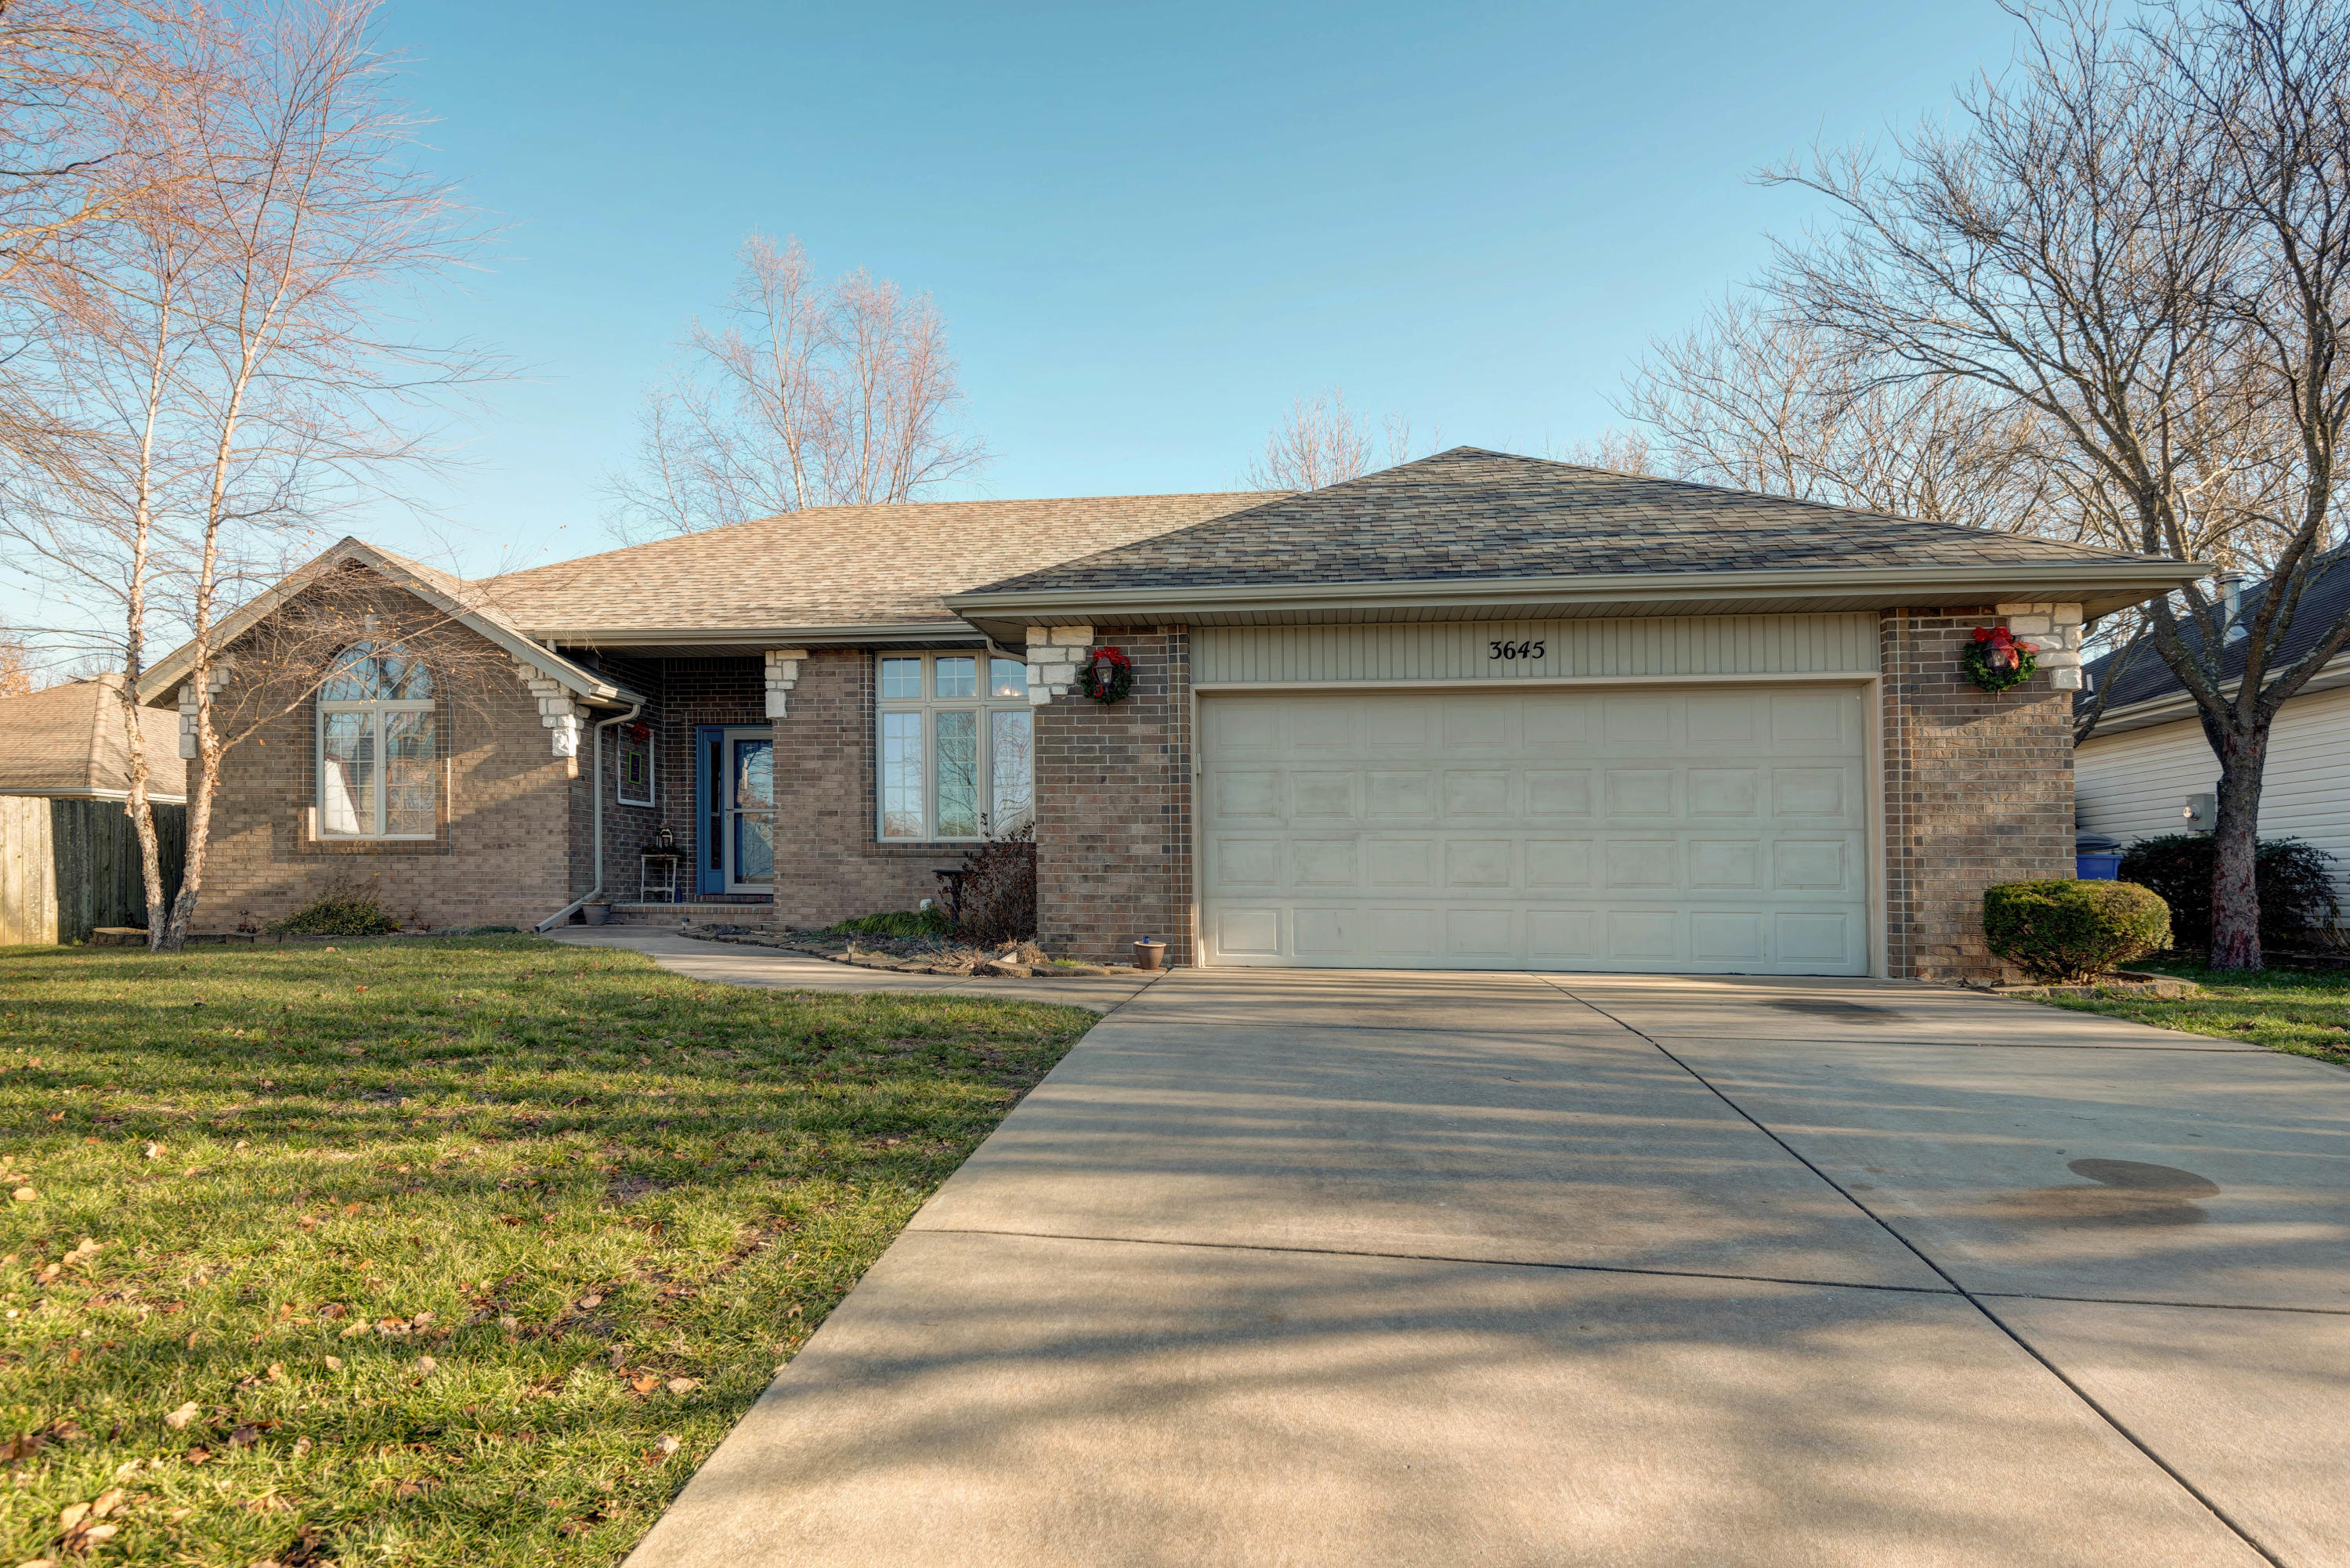 3645 Oak Run Street Battlefield, MO 65619